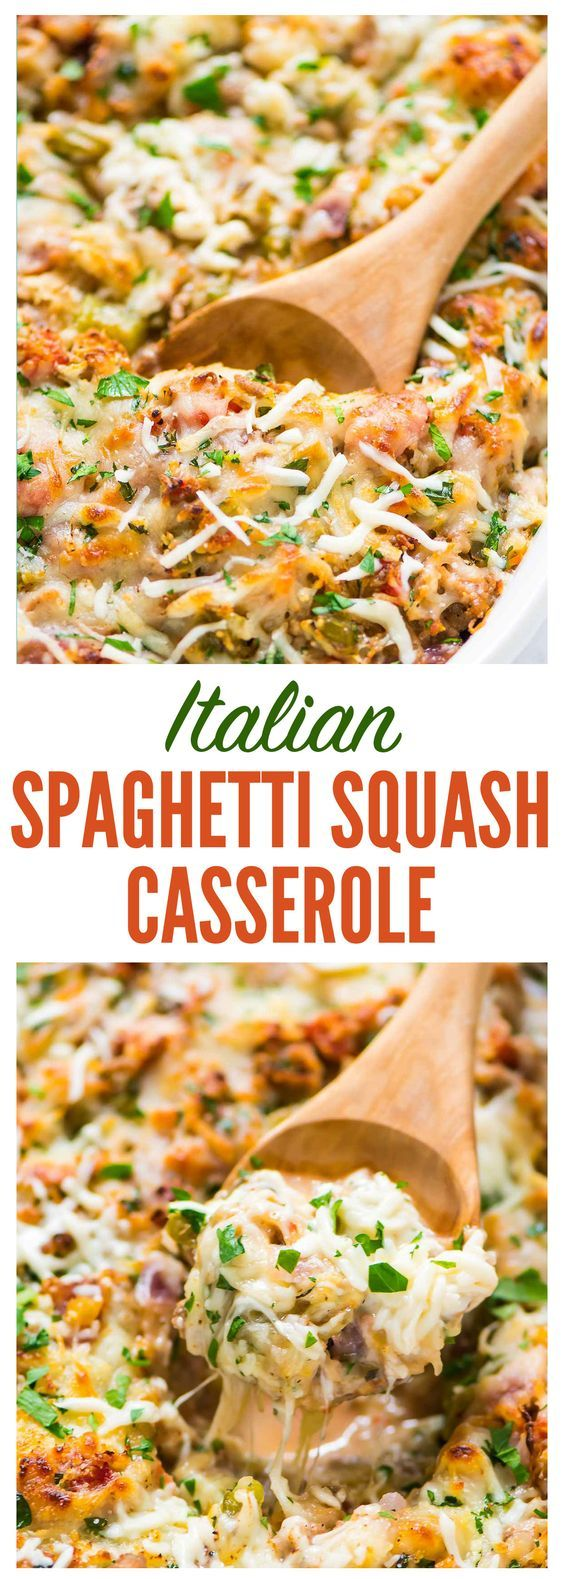 Spaghetti Squash Casserole with ground turkey, tomatoes, and Italian spices. Easy, CHEESY, and healthy! An all-in-one low carb, gluten free meal. Recipe at wellplated.com | @wellplated